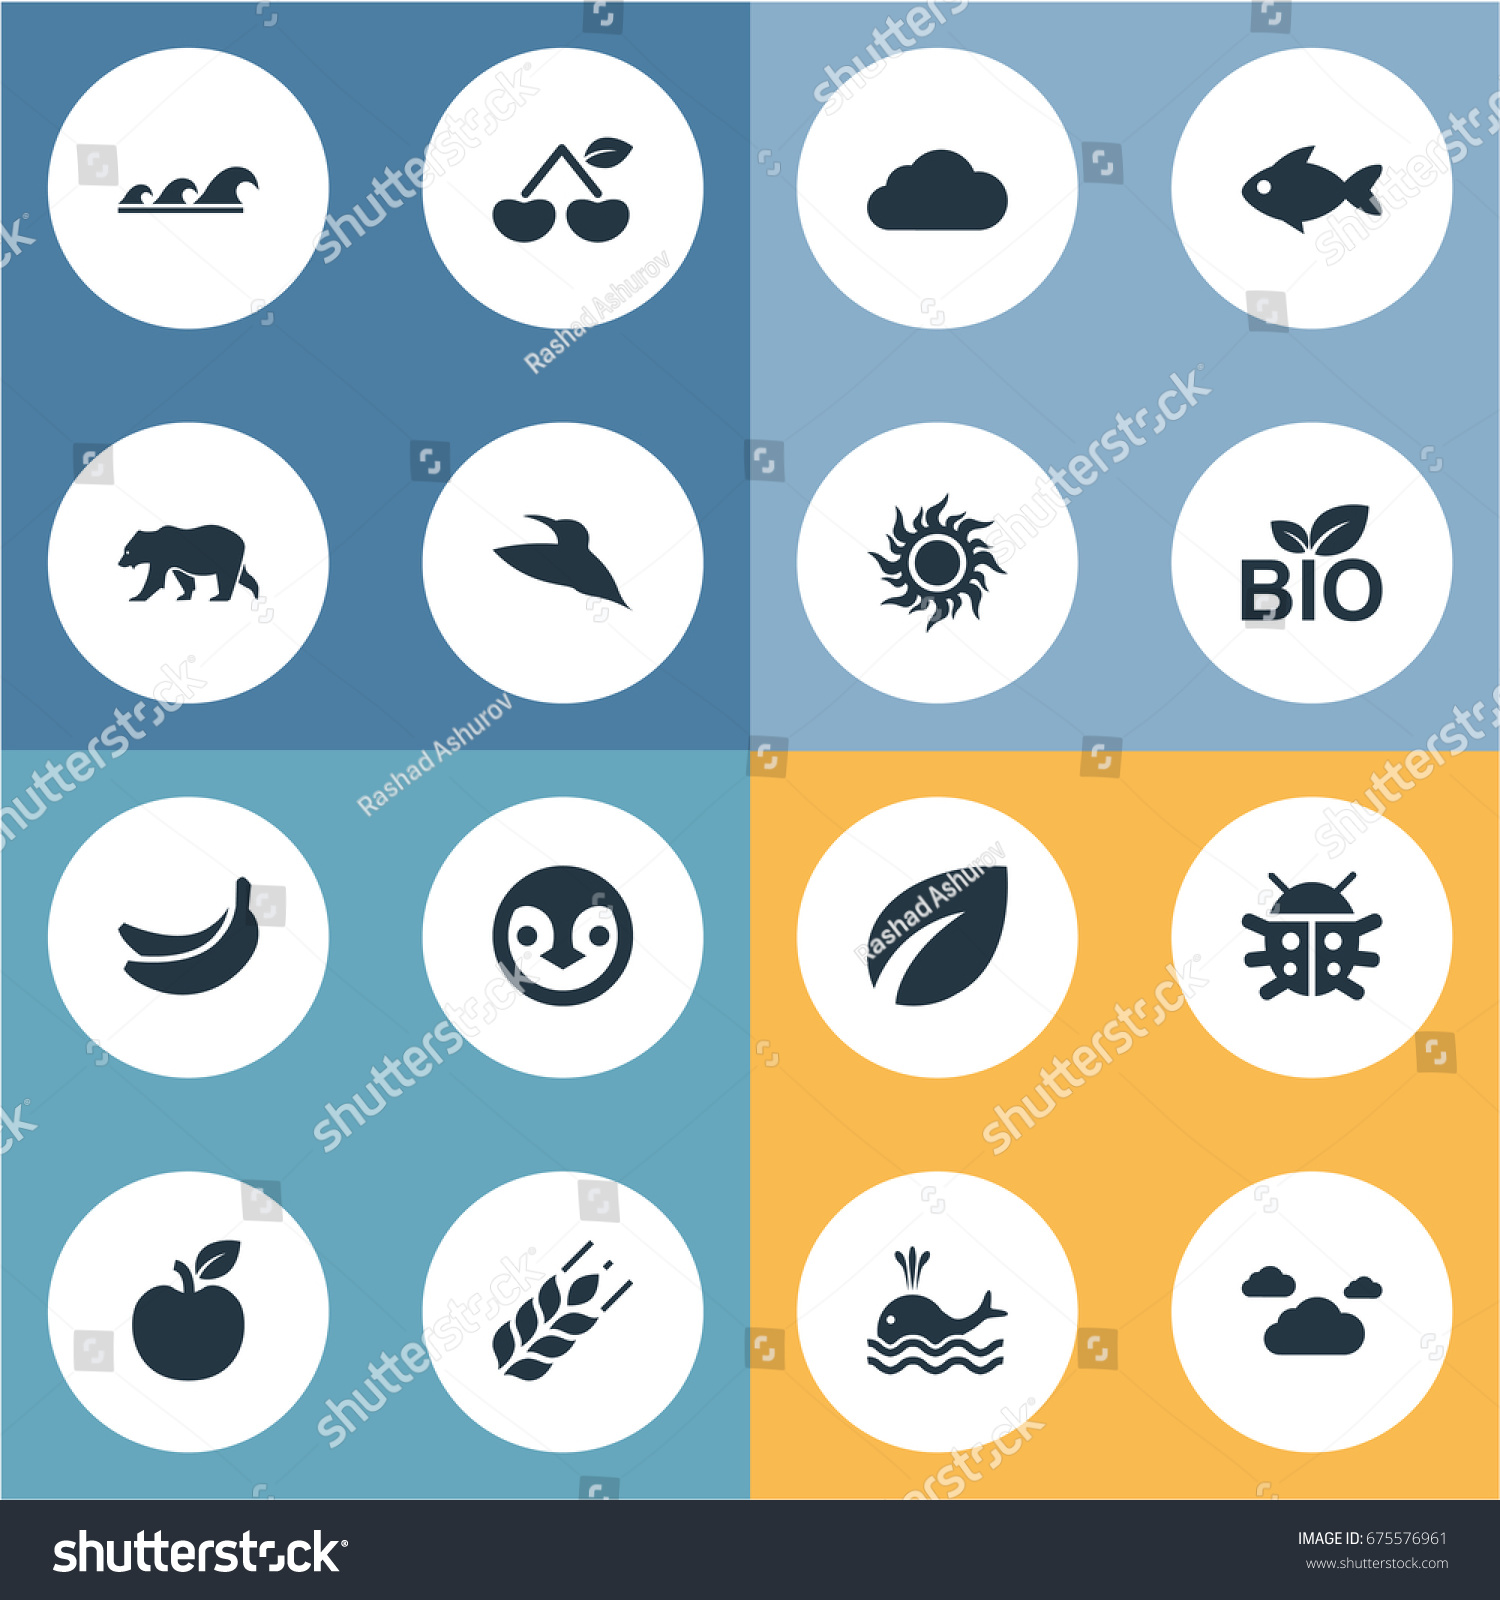 Grain Bio Vector Illustration Set Simple Bio Icons Stock Vector Royalty